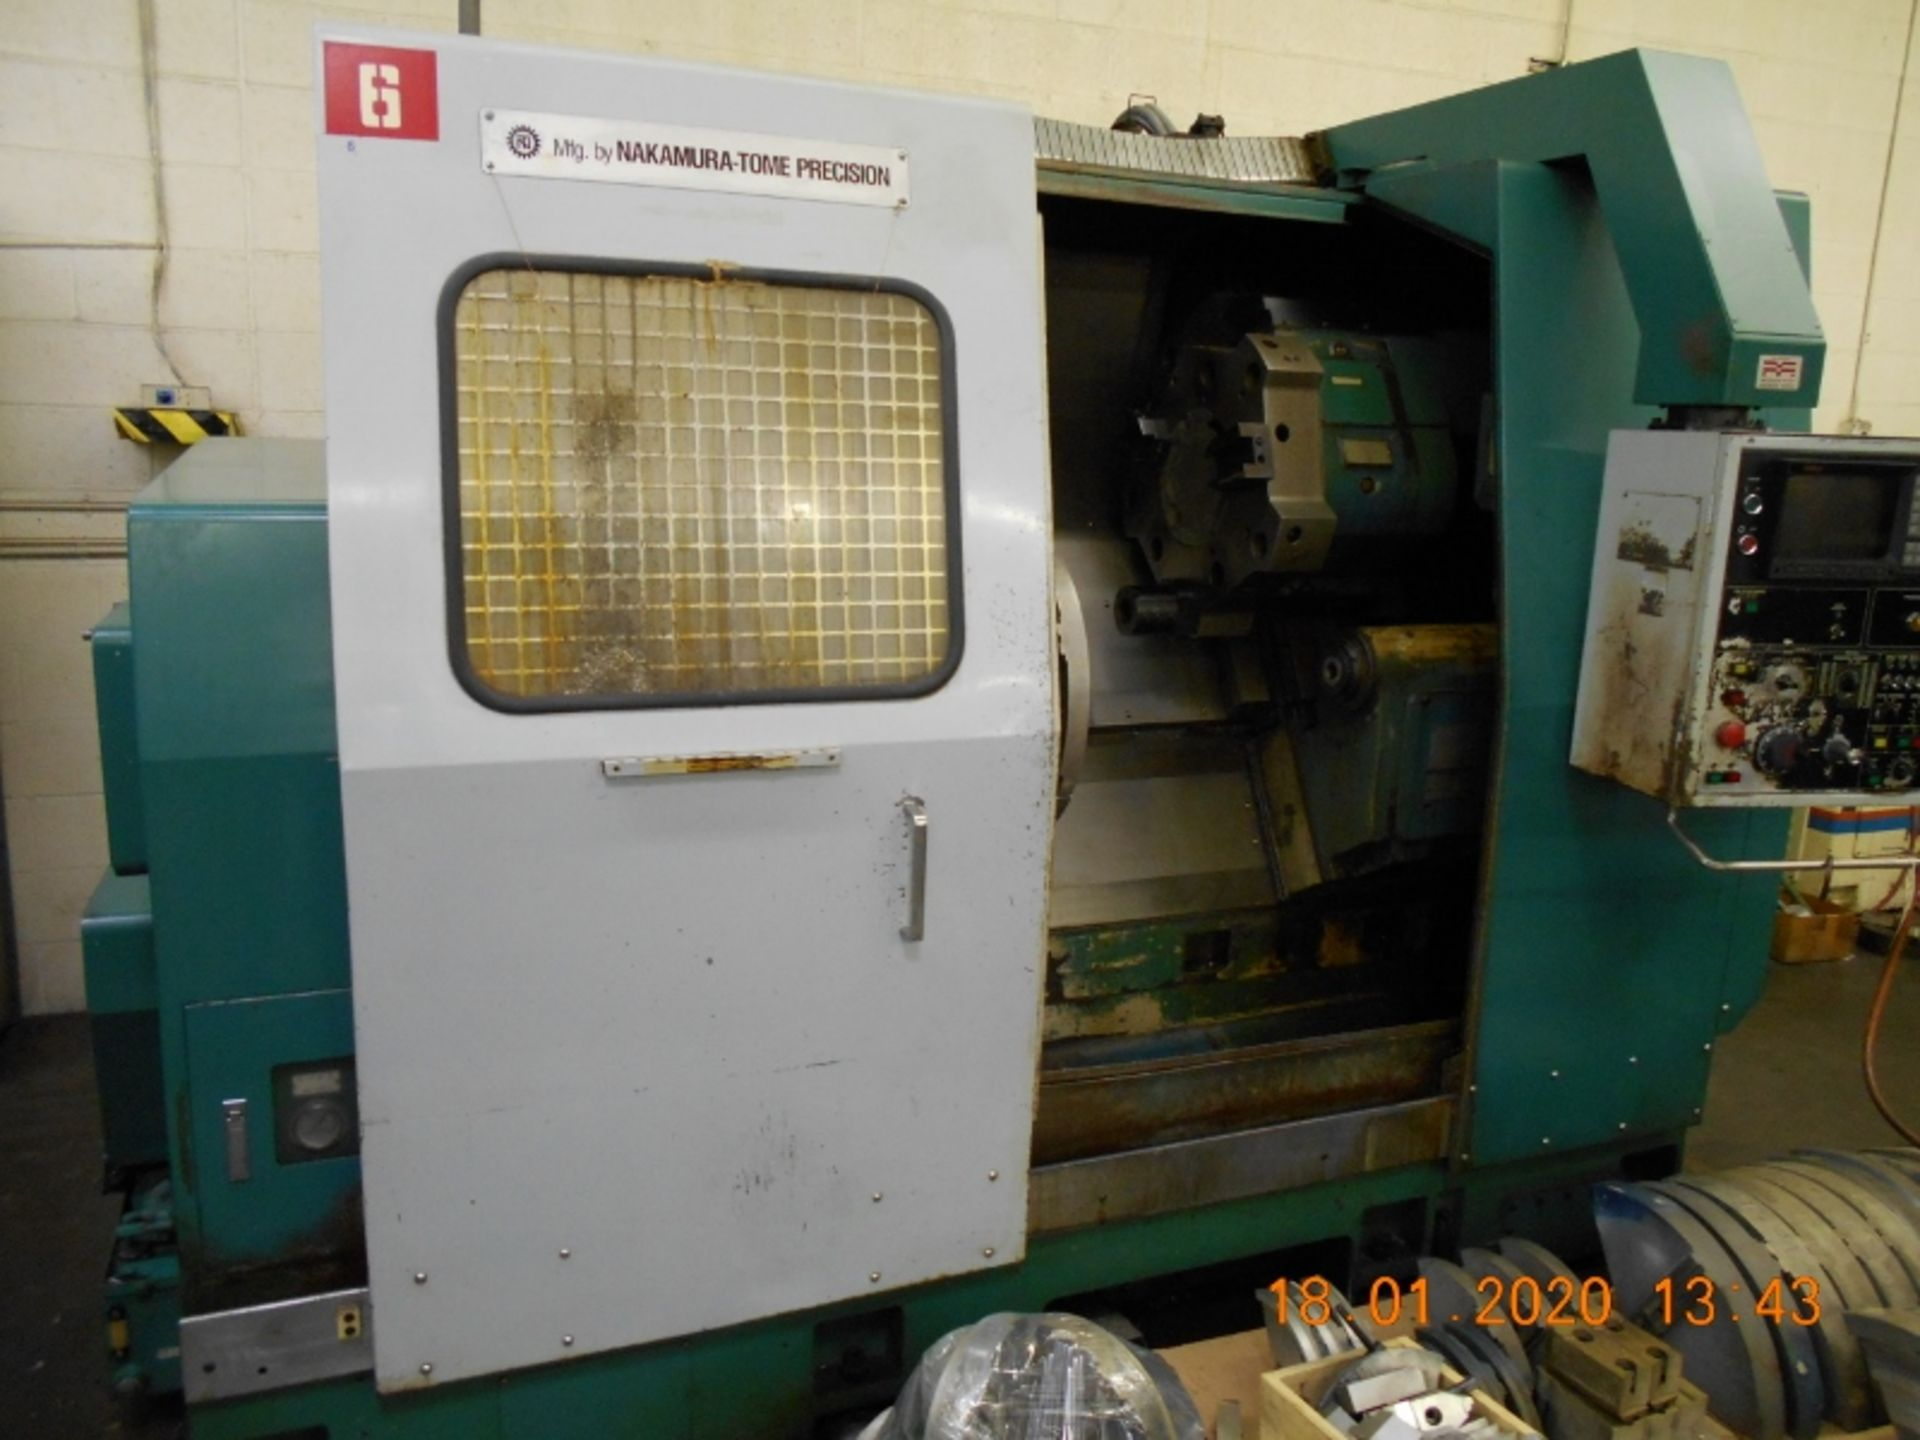 Lot 10 - Nakamura Tome Slant 4 CNC Turning Center with Fanuc 11T Controls SB-4 Serial # C44103 With 4 pallets